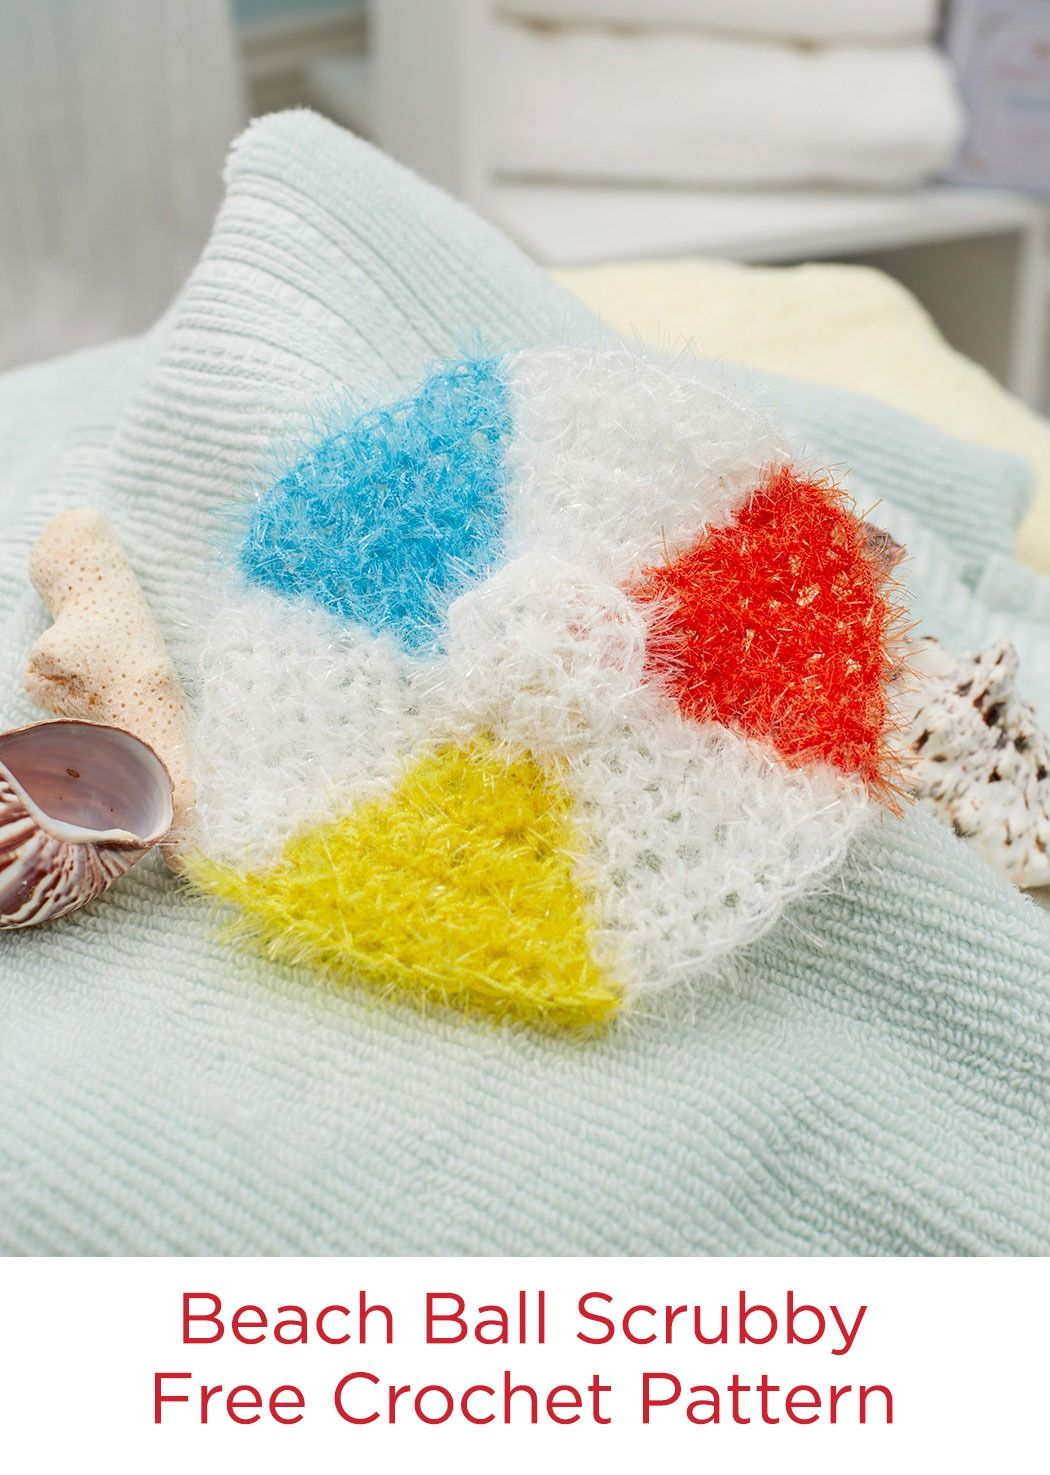 Beach Ball Scrubby Free Crochet Pattern In Red Heart Scrubby Sparkle